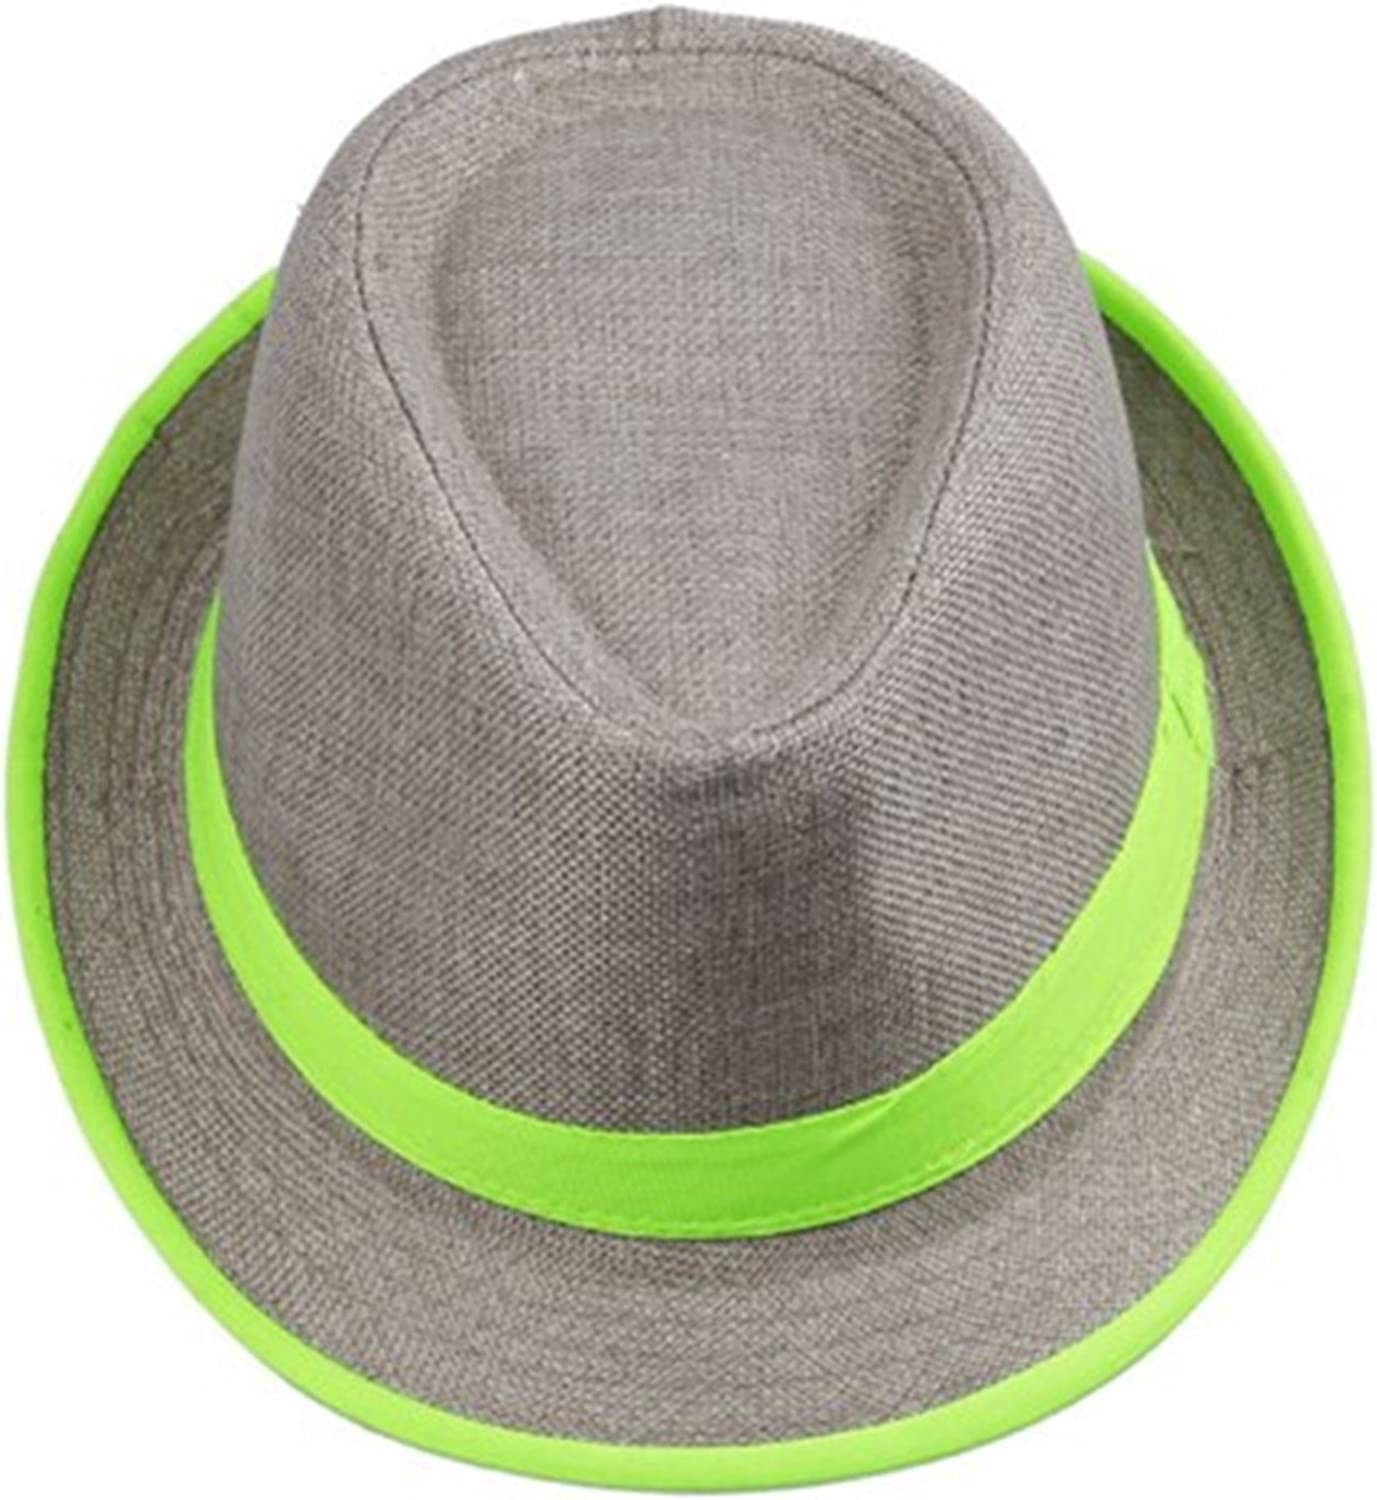 outfly Unisex Fedora Trilby Hut Top Hat 100/% Baumwolle Panama Stil Sommer Strand Sonne Jazz Cap